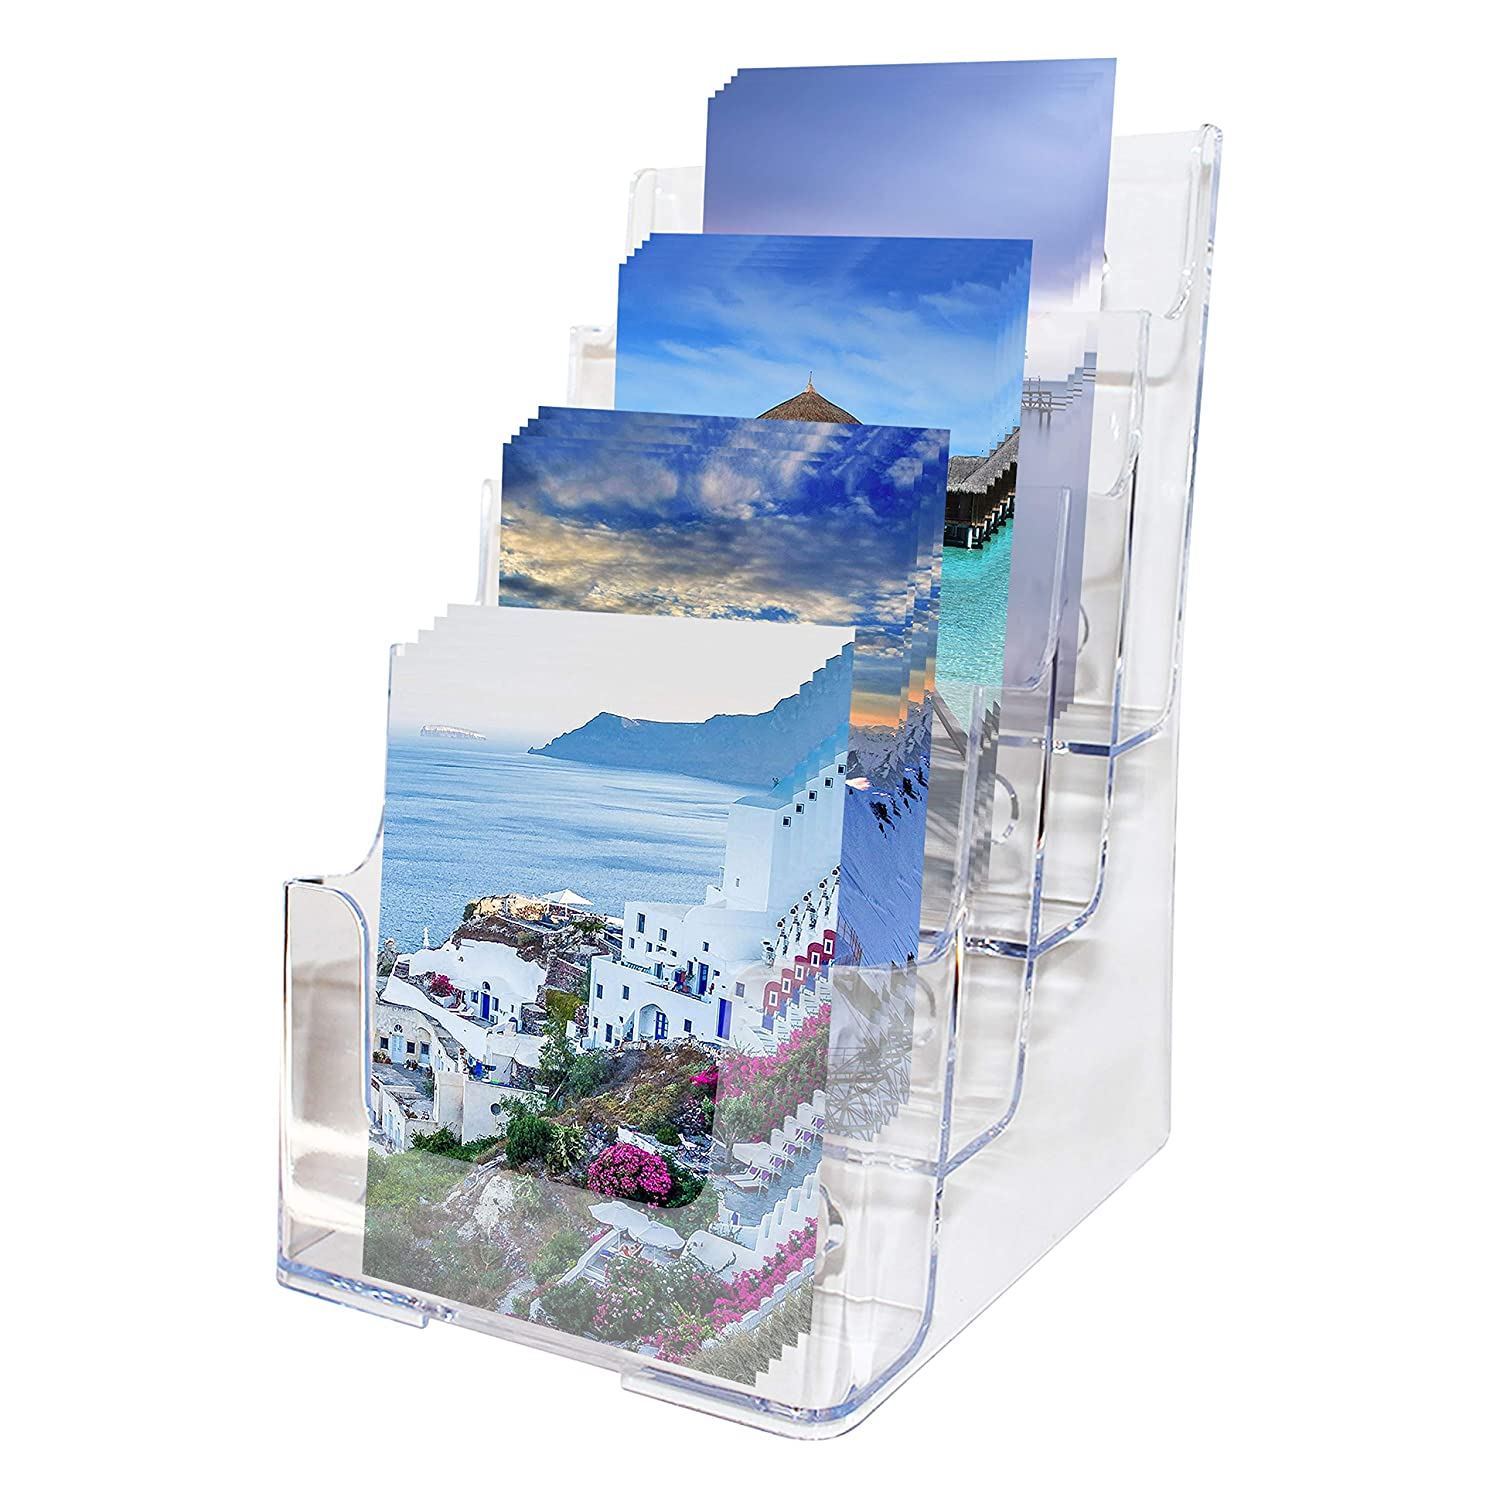 BELLE VOUS Multi-tier Acrylic Literature Holder With Leg for Wall or Desktop - Clear Display Stand Holds Flyers, Leaflet, Pamphlet and Brouchers - 4 x A5 Pockets Size With 2 Holes For Wall Mounting